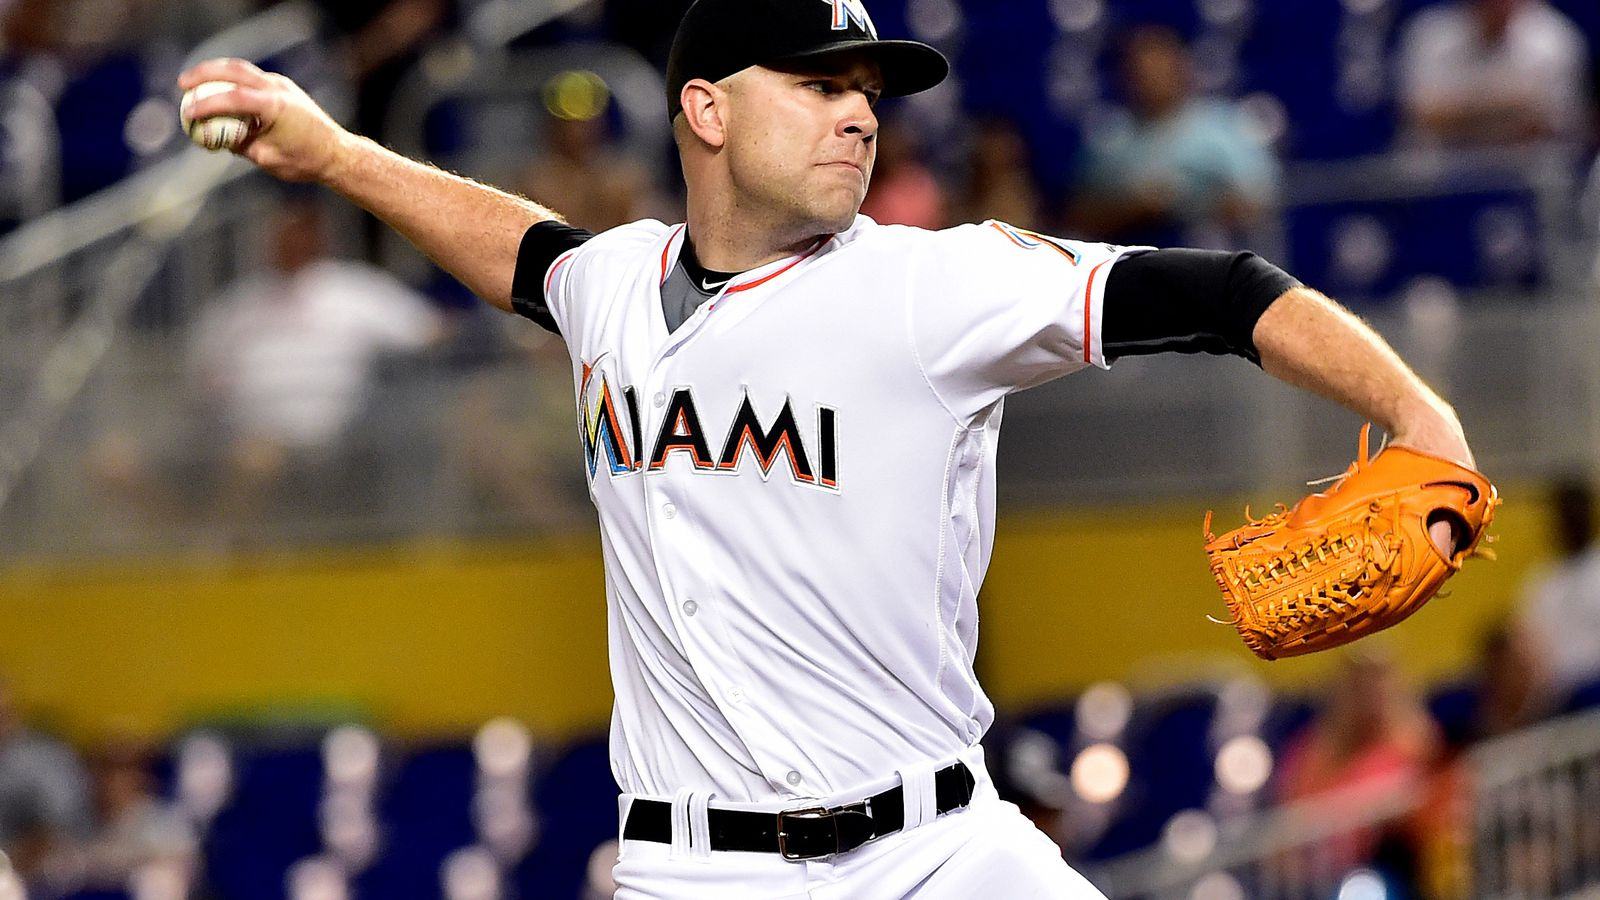 Marlins Place Phelps On DL